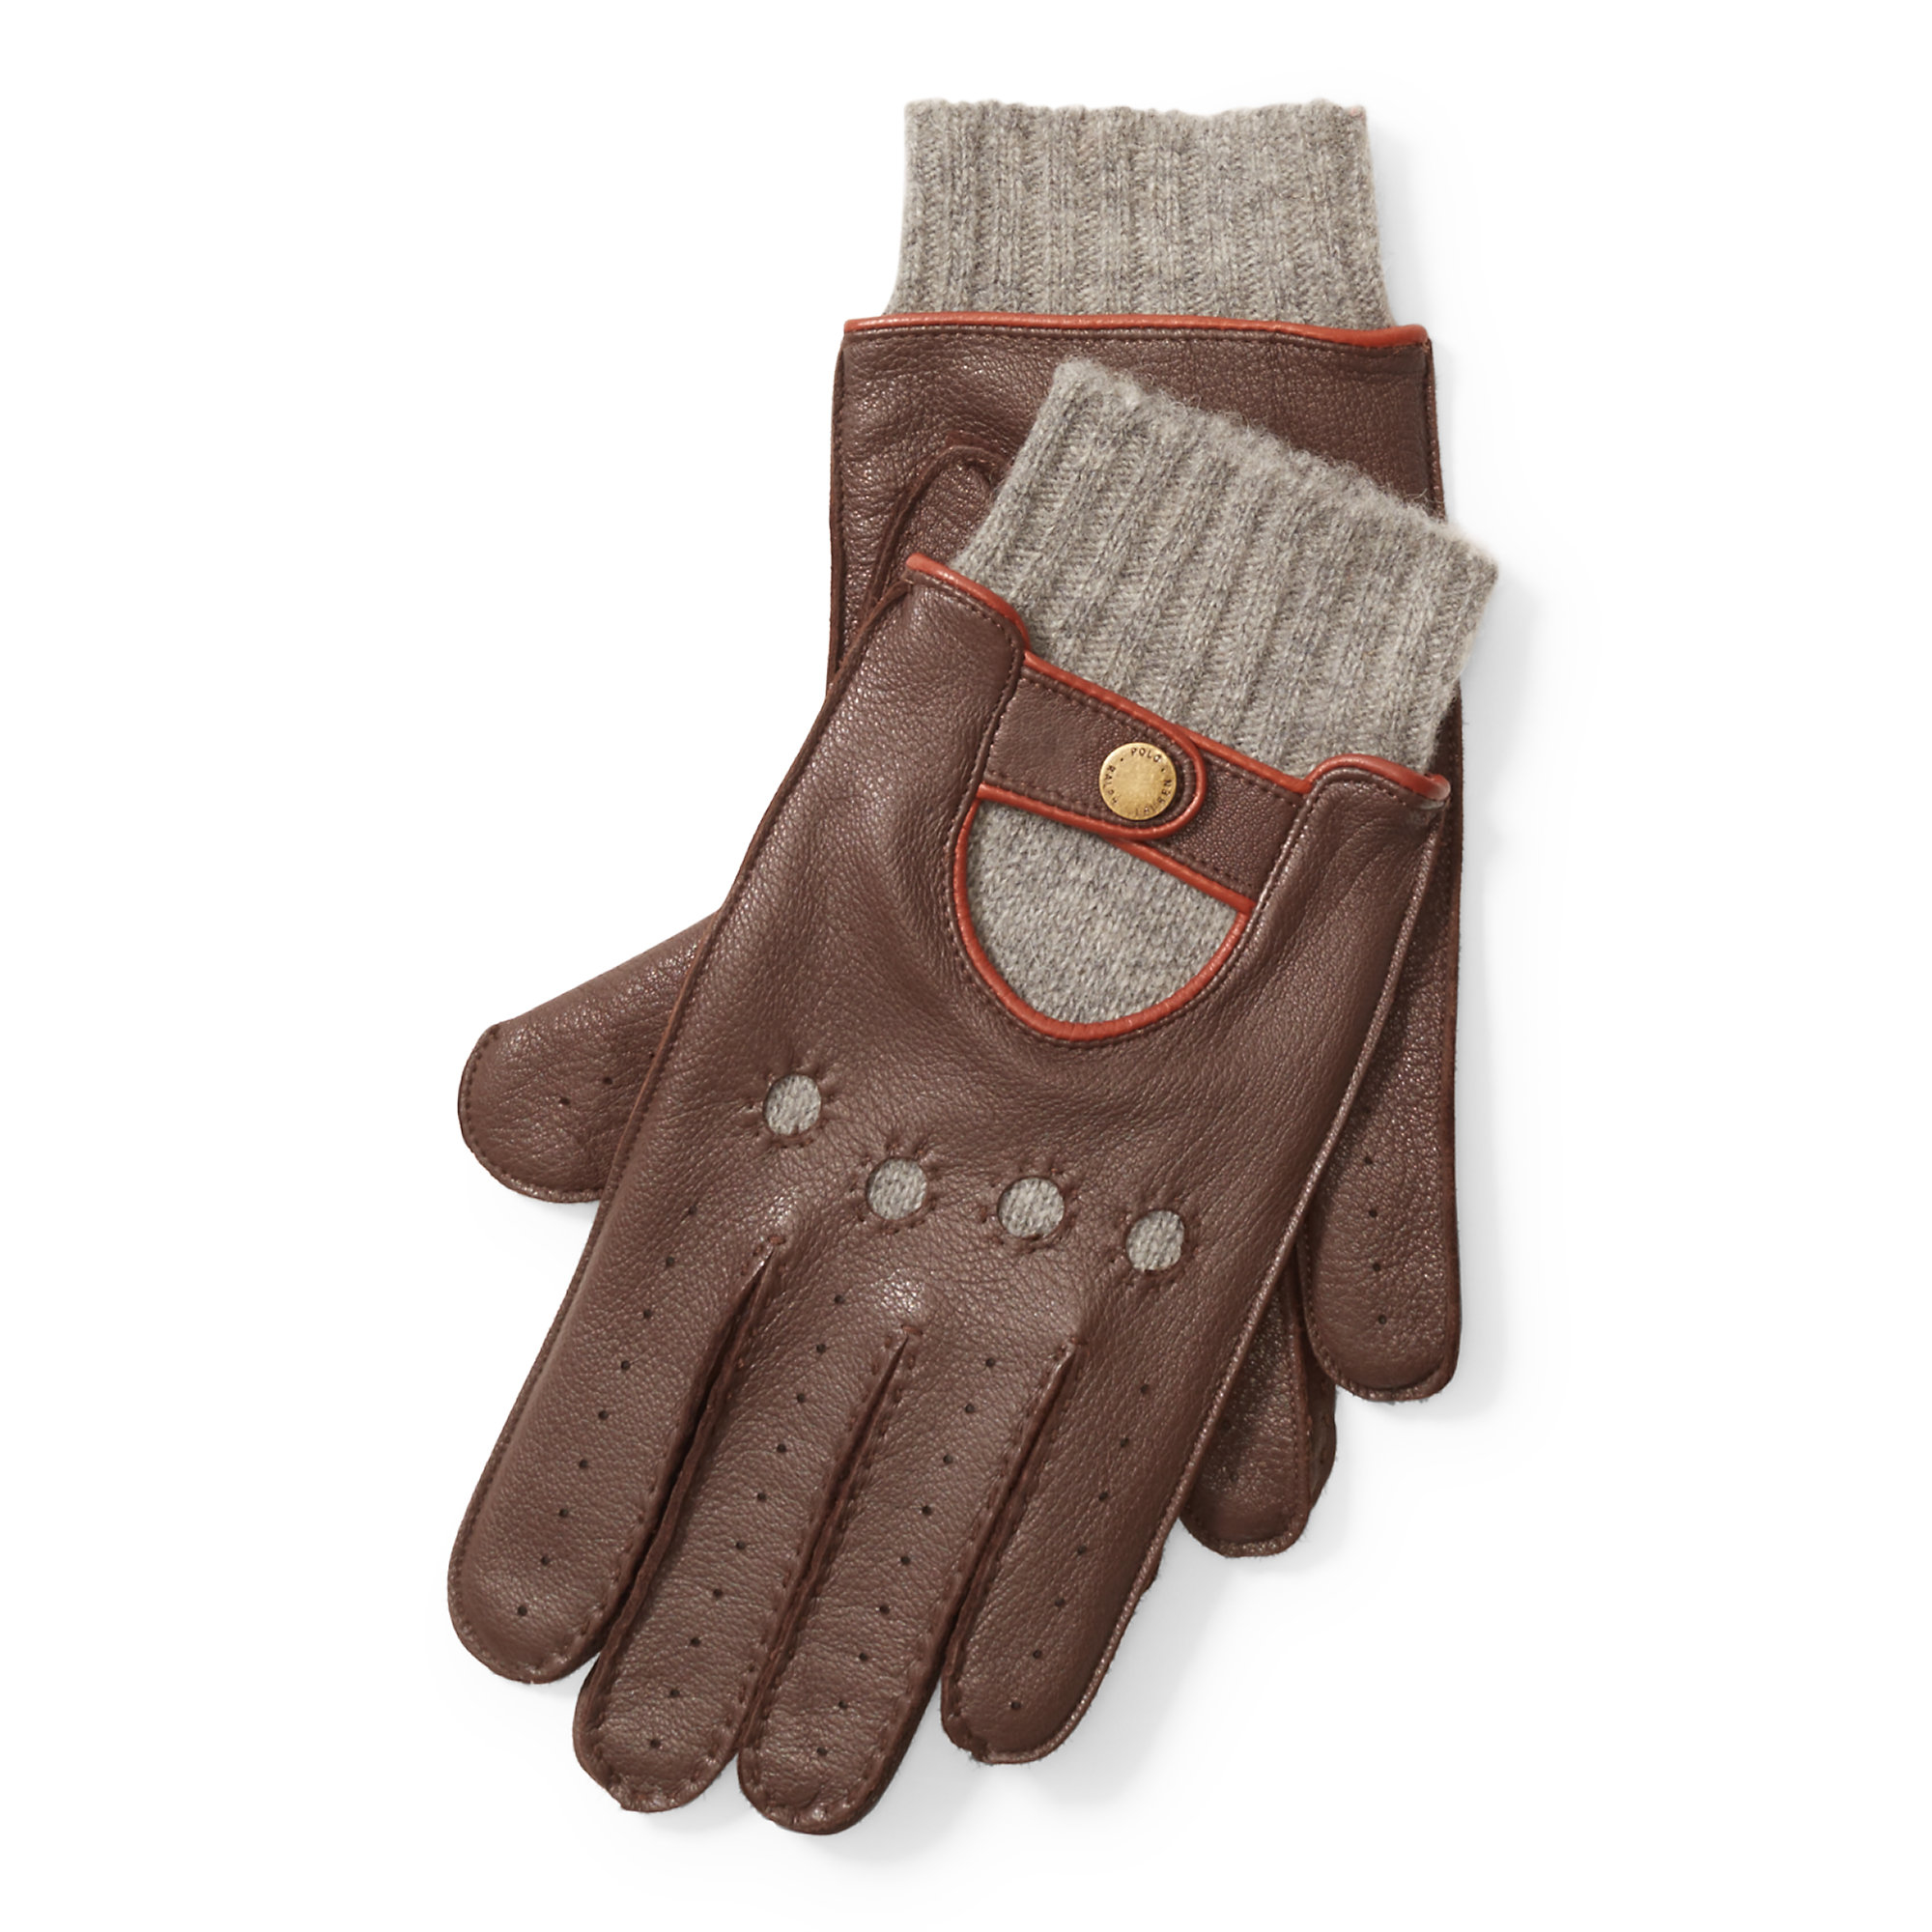 Leather driving gloves macys - Gallery Men S Driving Gloves